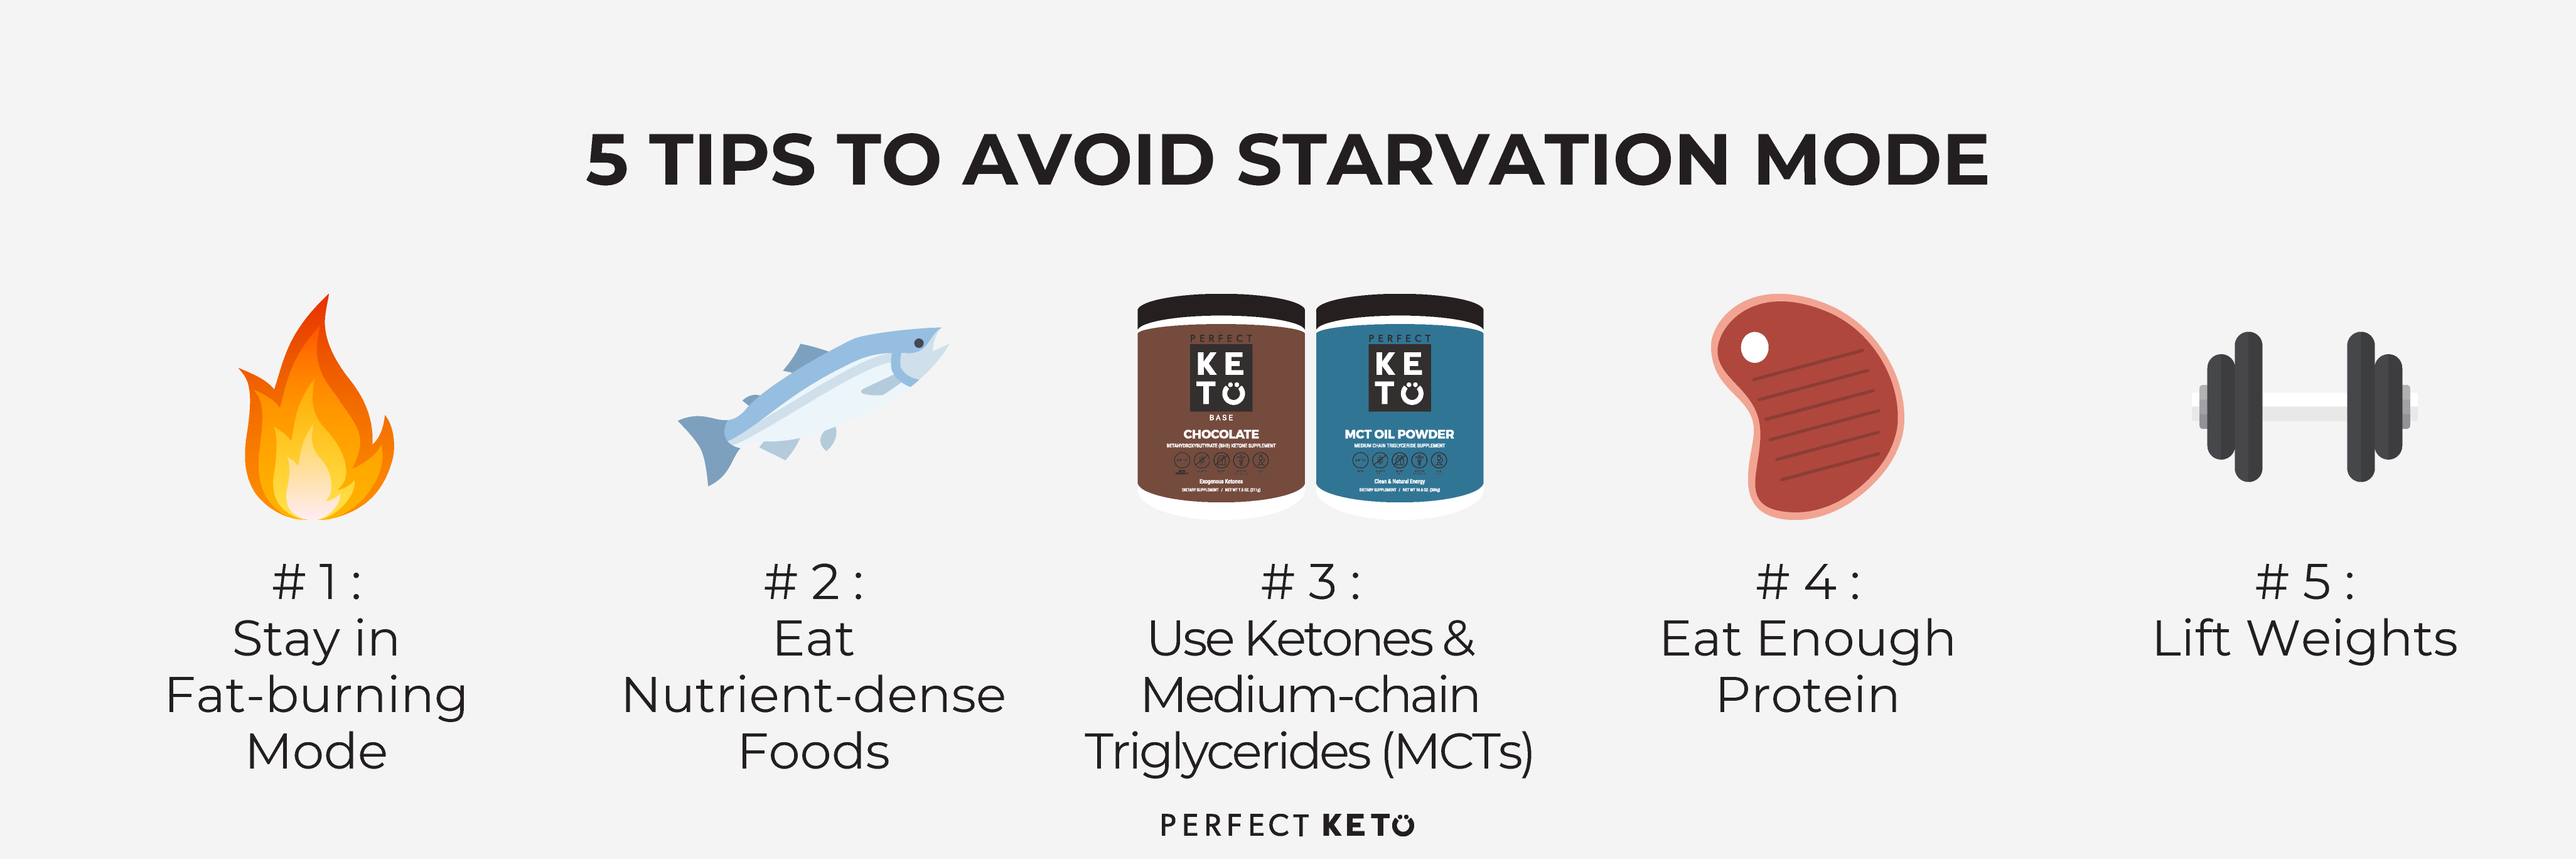 5-tips-to-avoid-starvation-mode.png